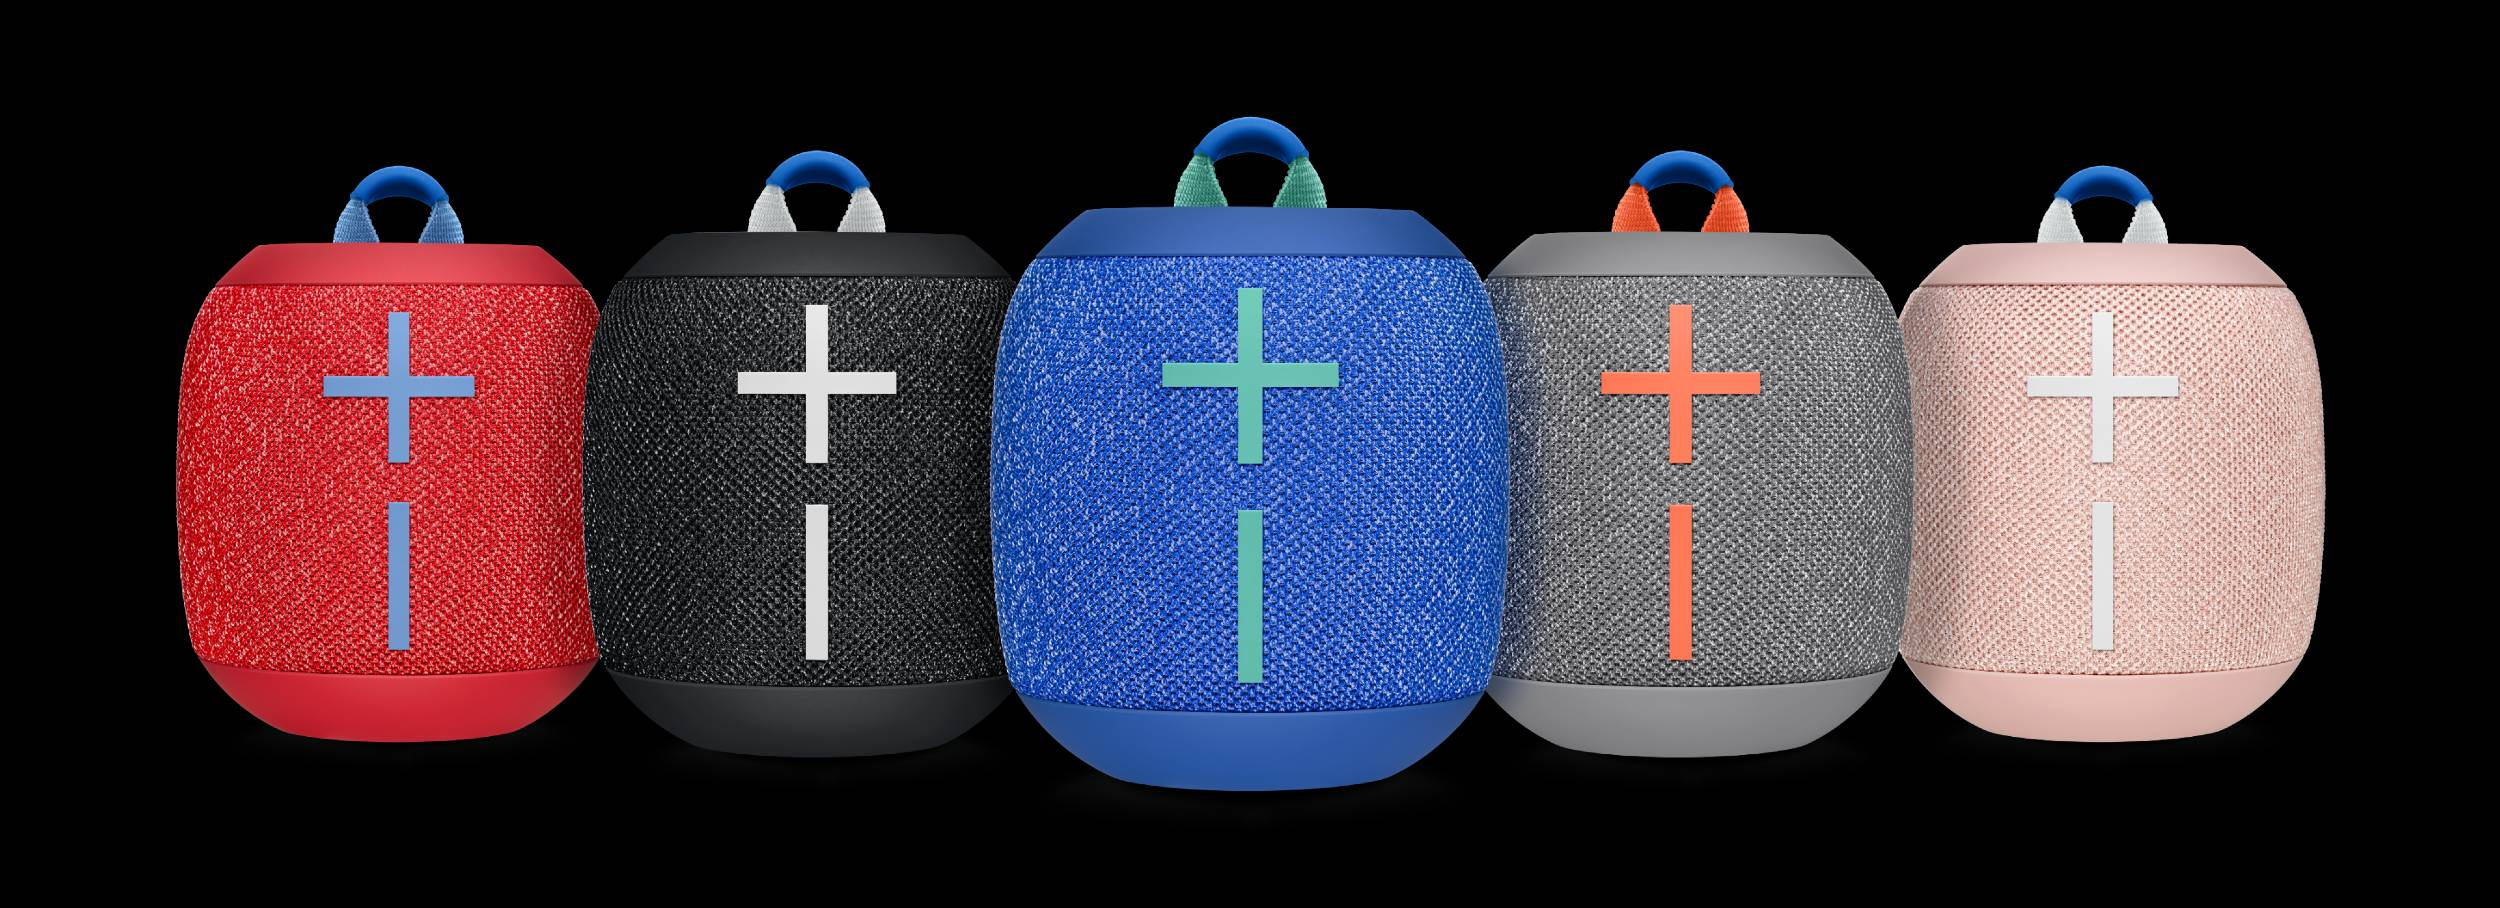 Each speaker comes in a stylish two-tone fabric, drawing Wonderboom 2 comes in five colors: Deep Space Black, Crushed Ice (gray), Radical Red, Bermuda Blue and Just Peach (pink).